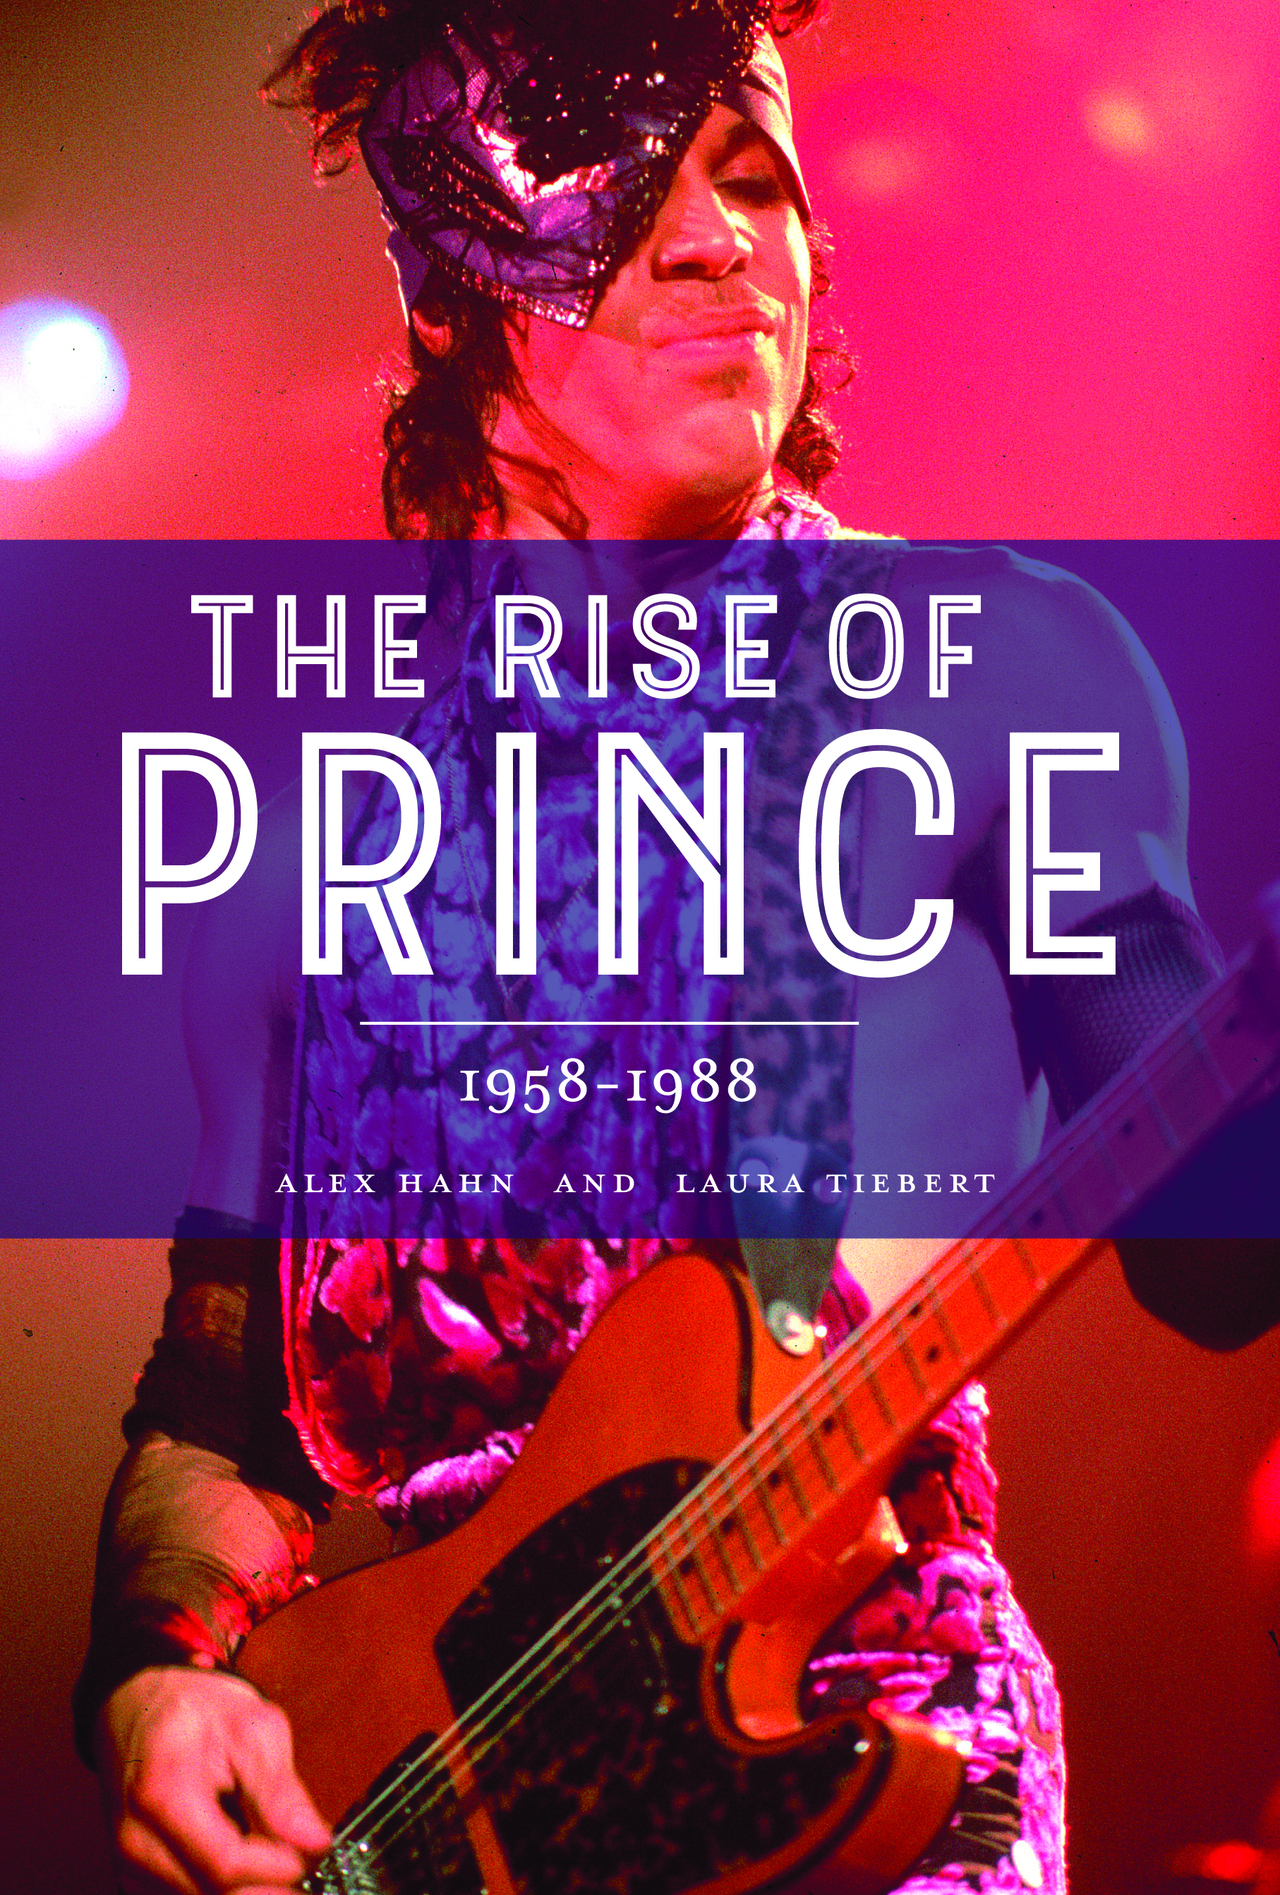 Final prince cover %281%29